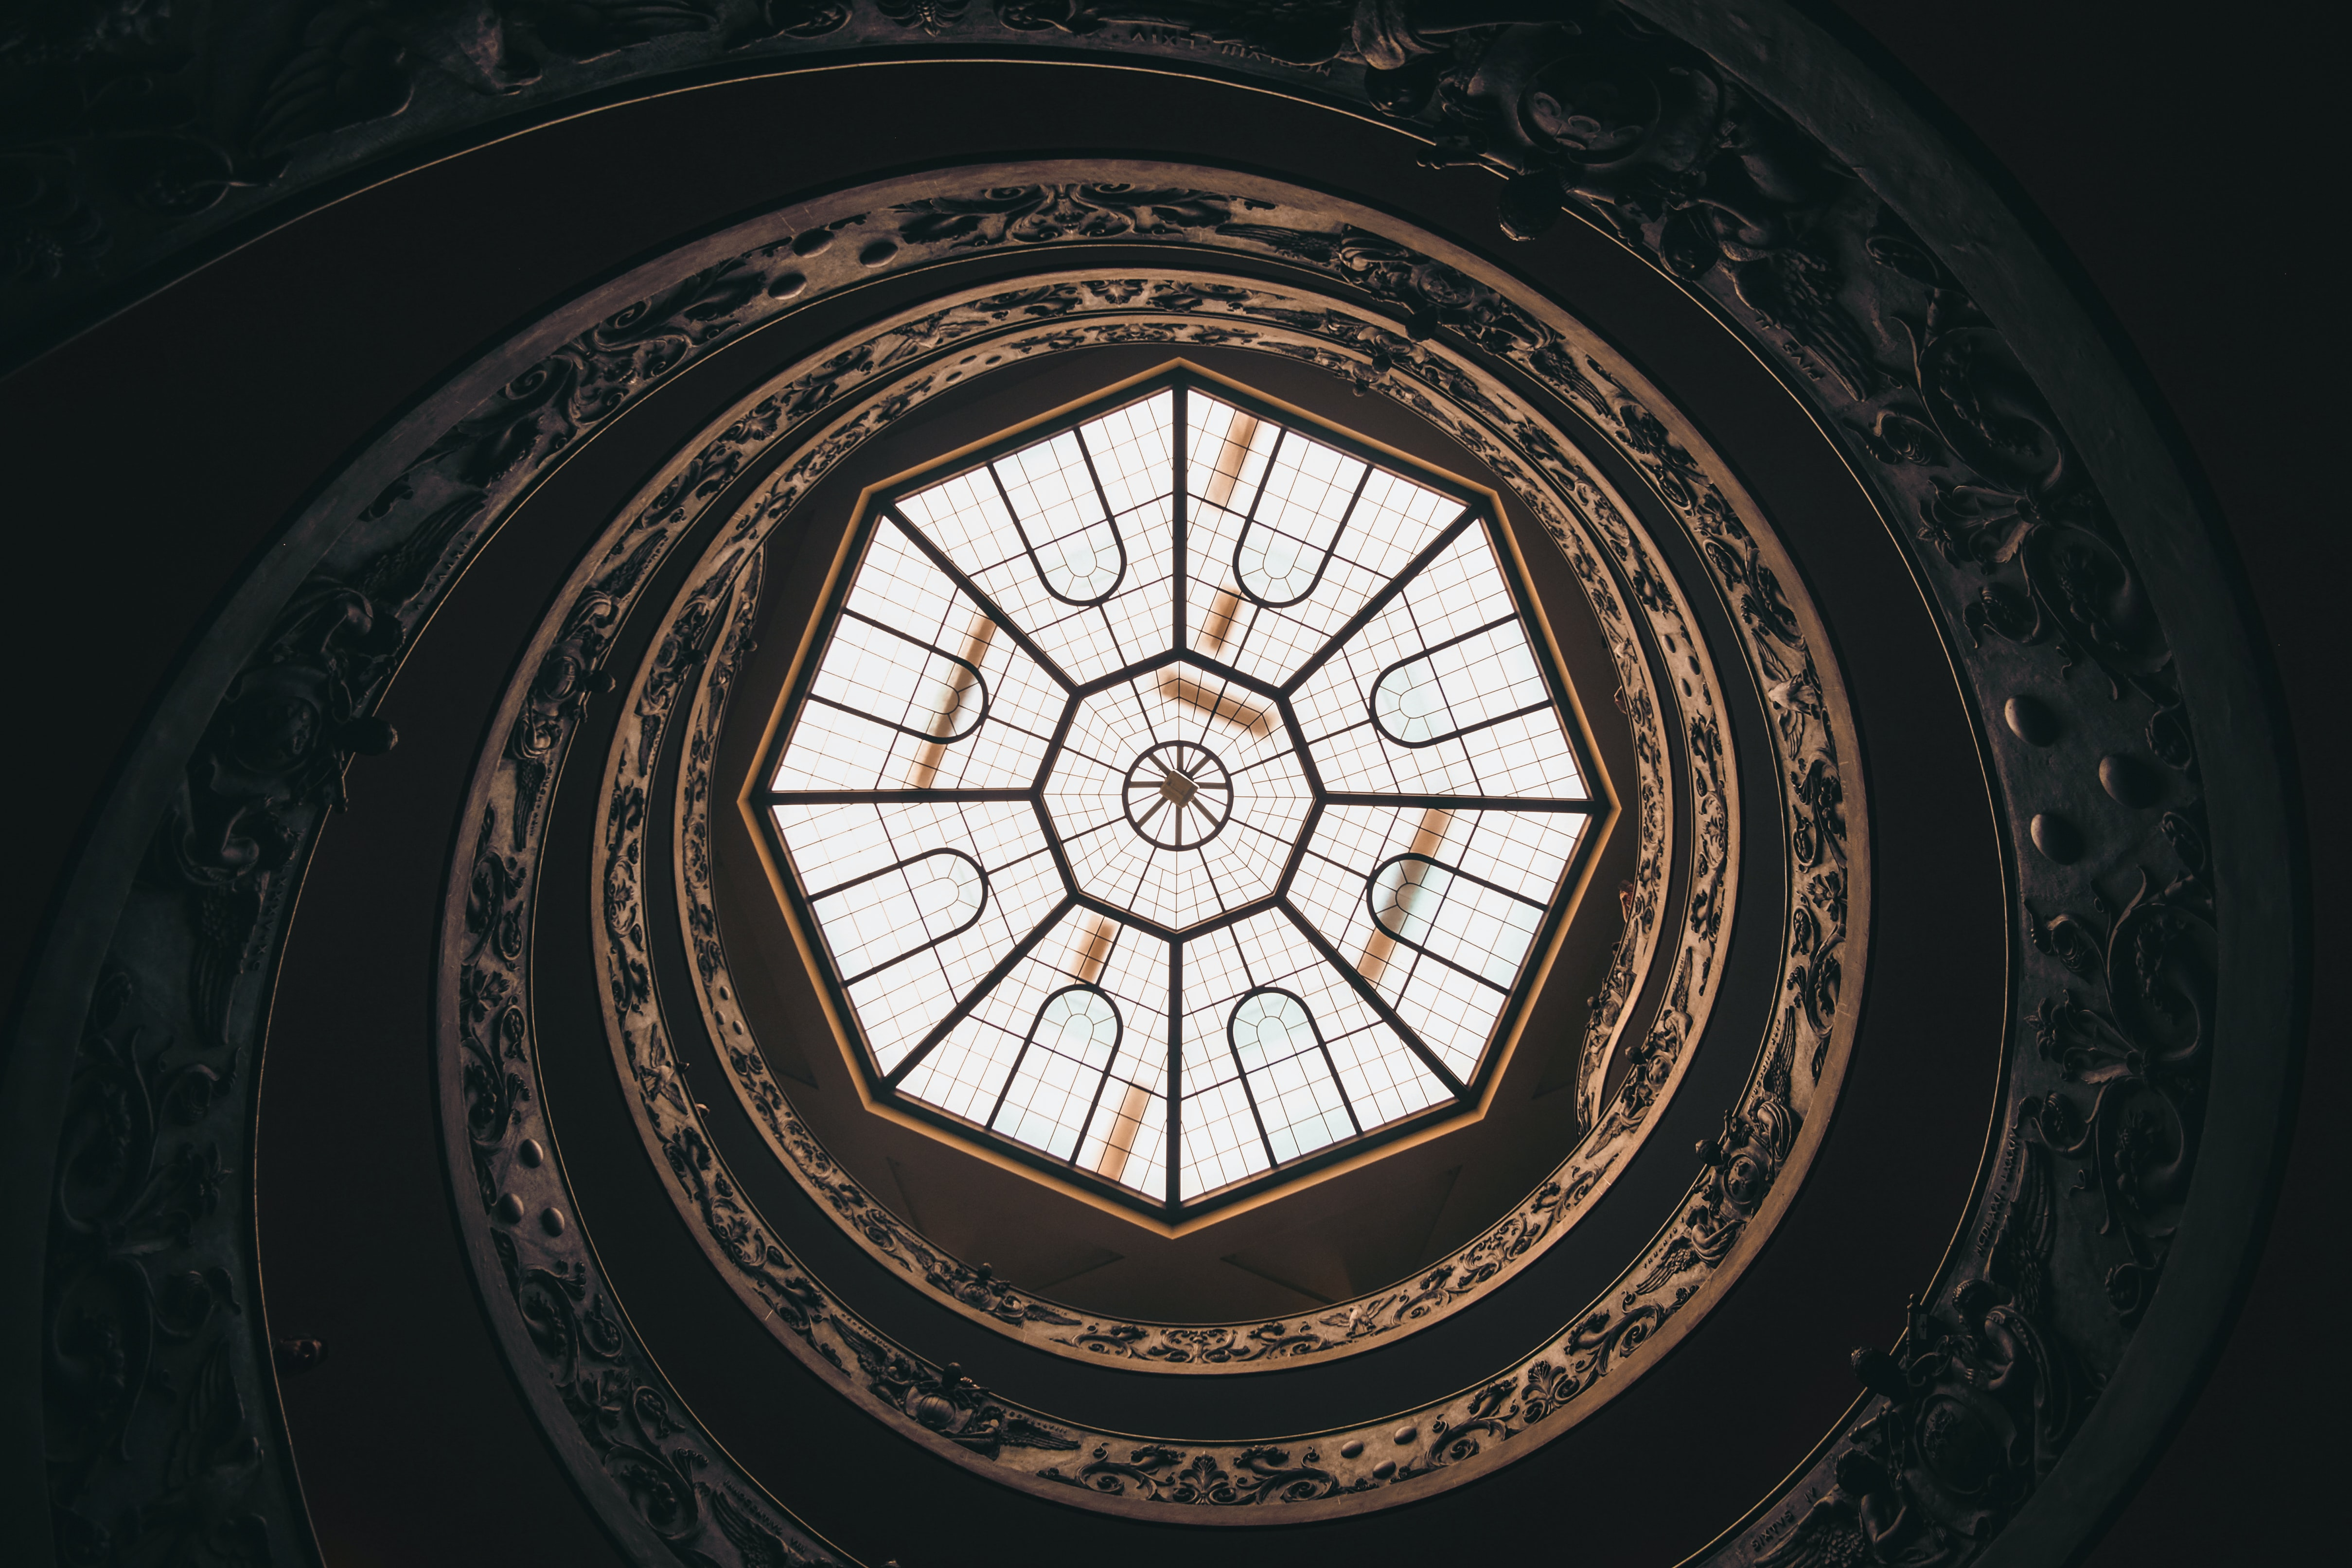 round ceiling with window